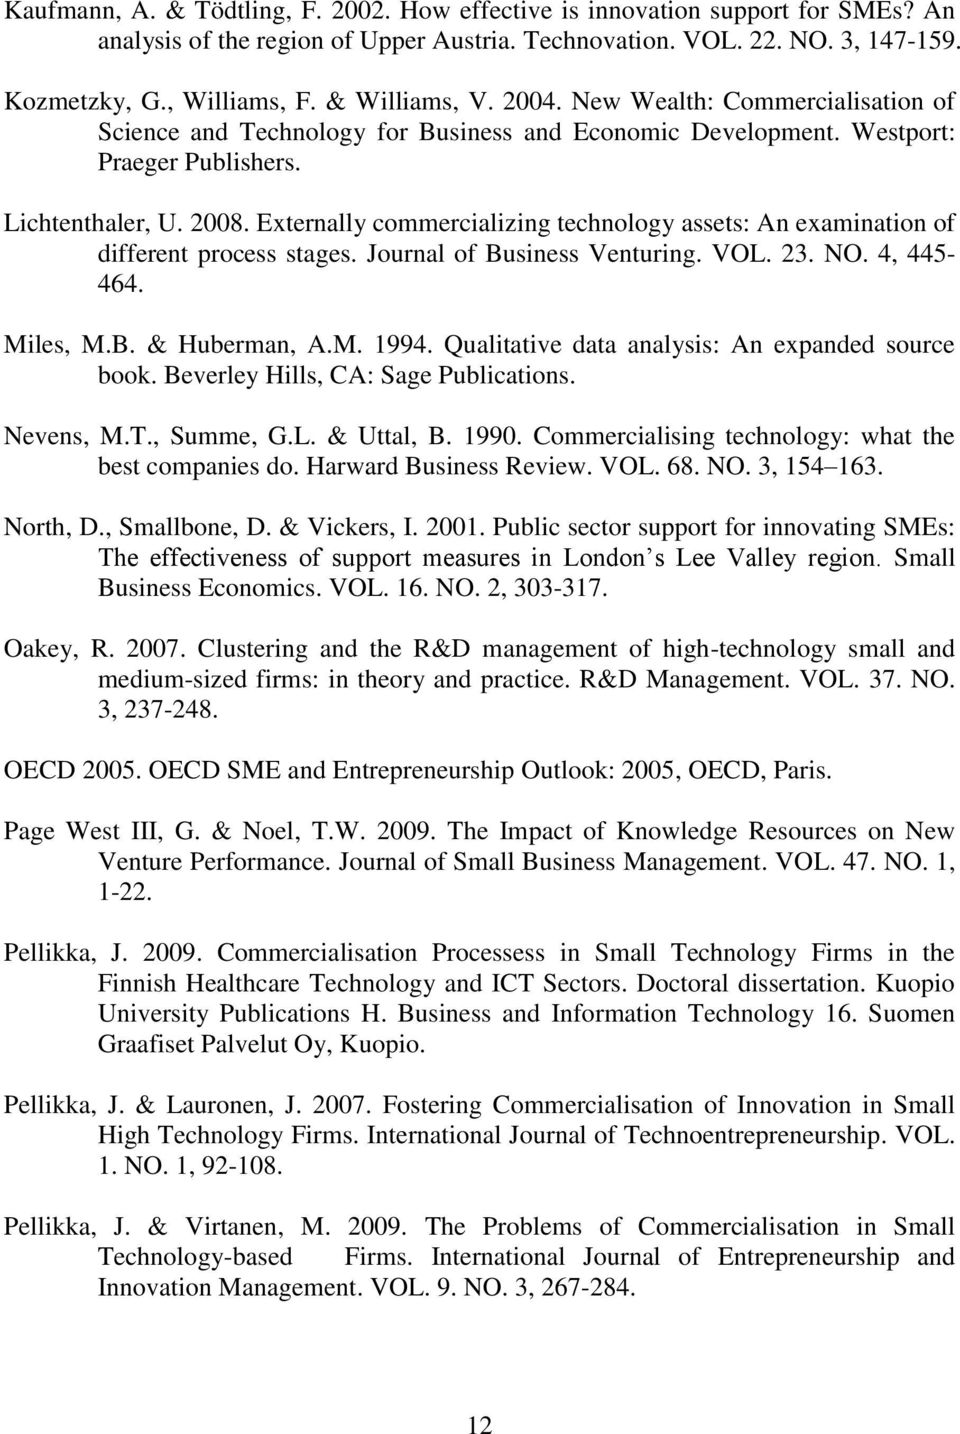 Externally commercializing technology assets: An examination of different process stages. Journal of Business Venturing. VOL. 23. NO. 4, 445-464. Miles, M.B. & Huberman, A.M. 1994.